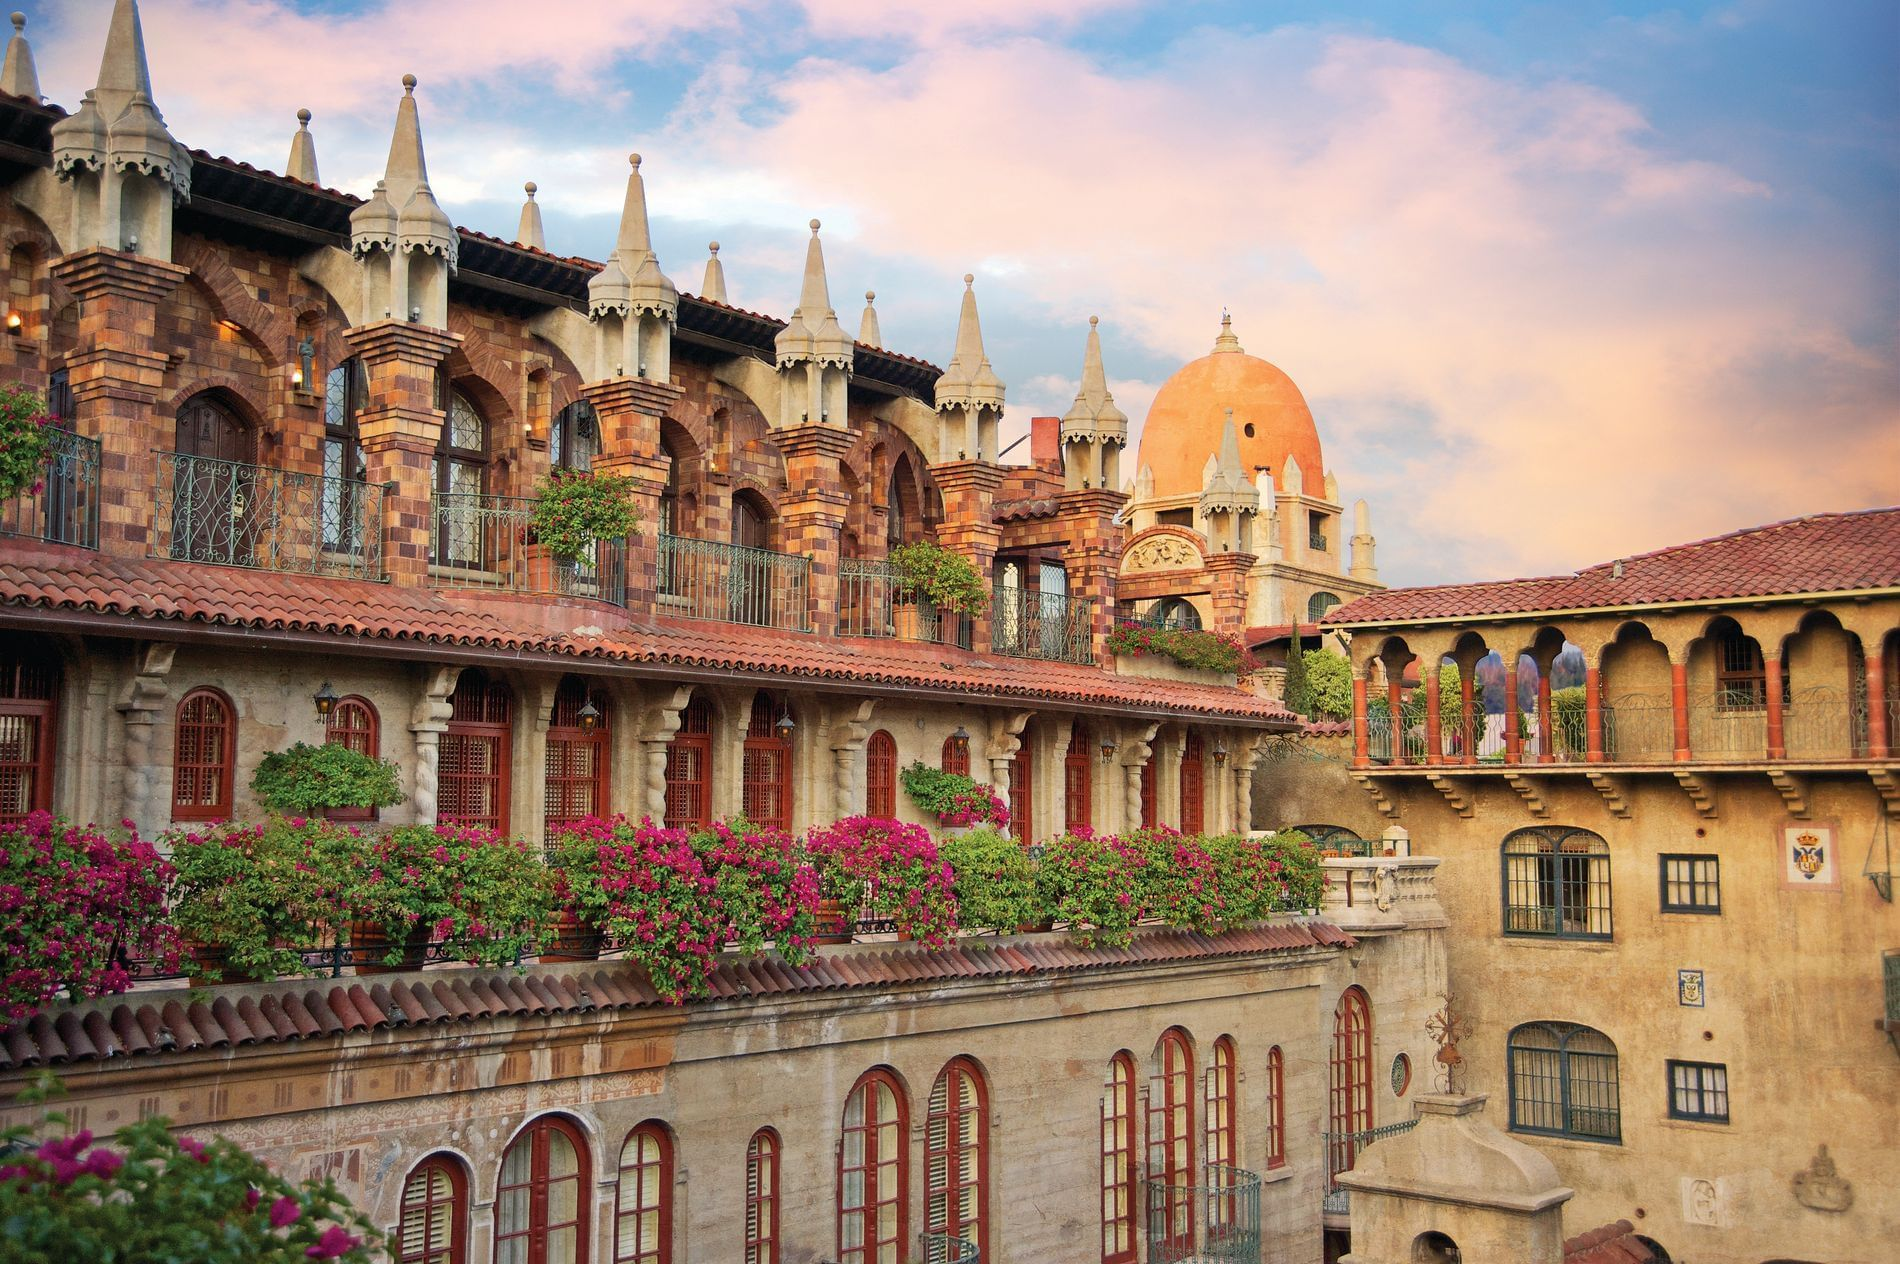 exterior of Mission Inn with balconies, windows and flowers